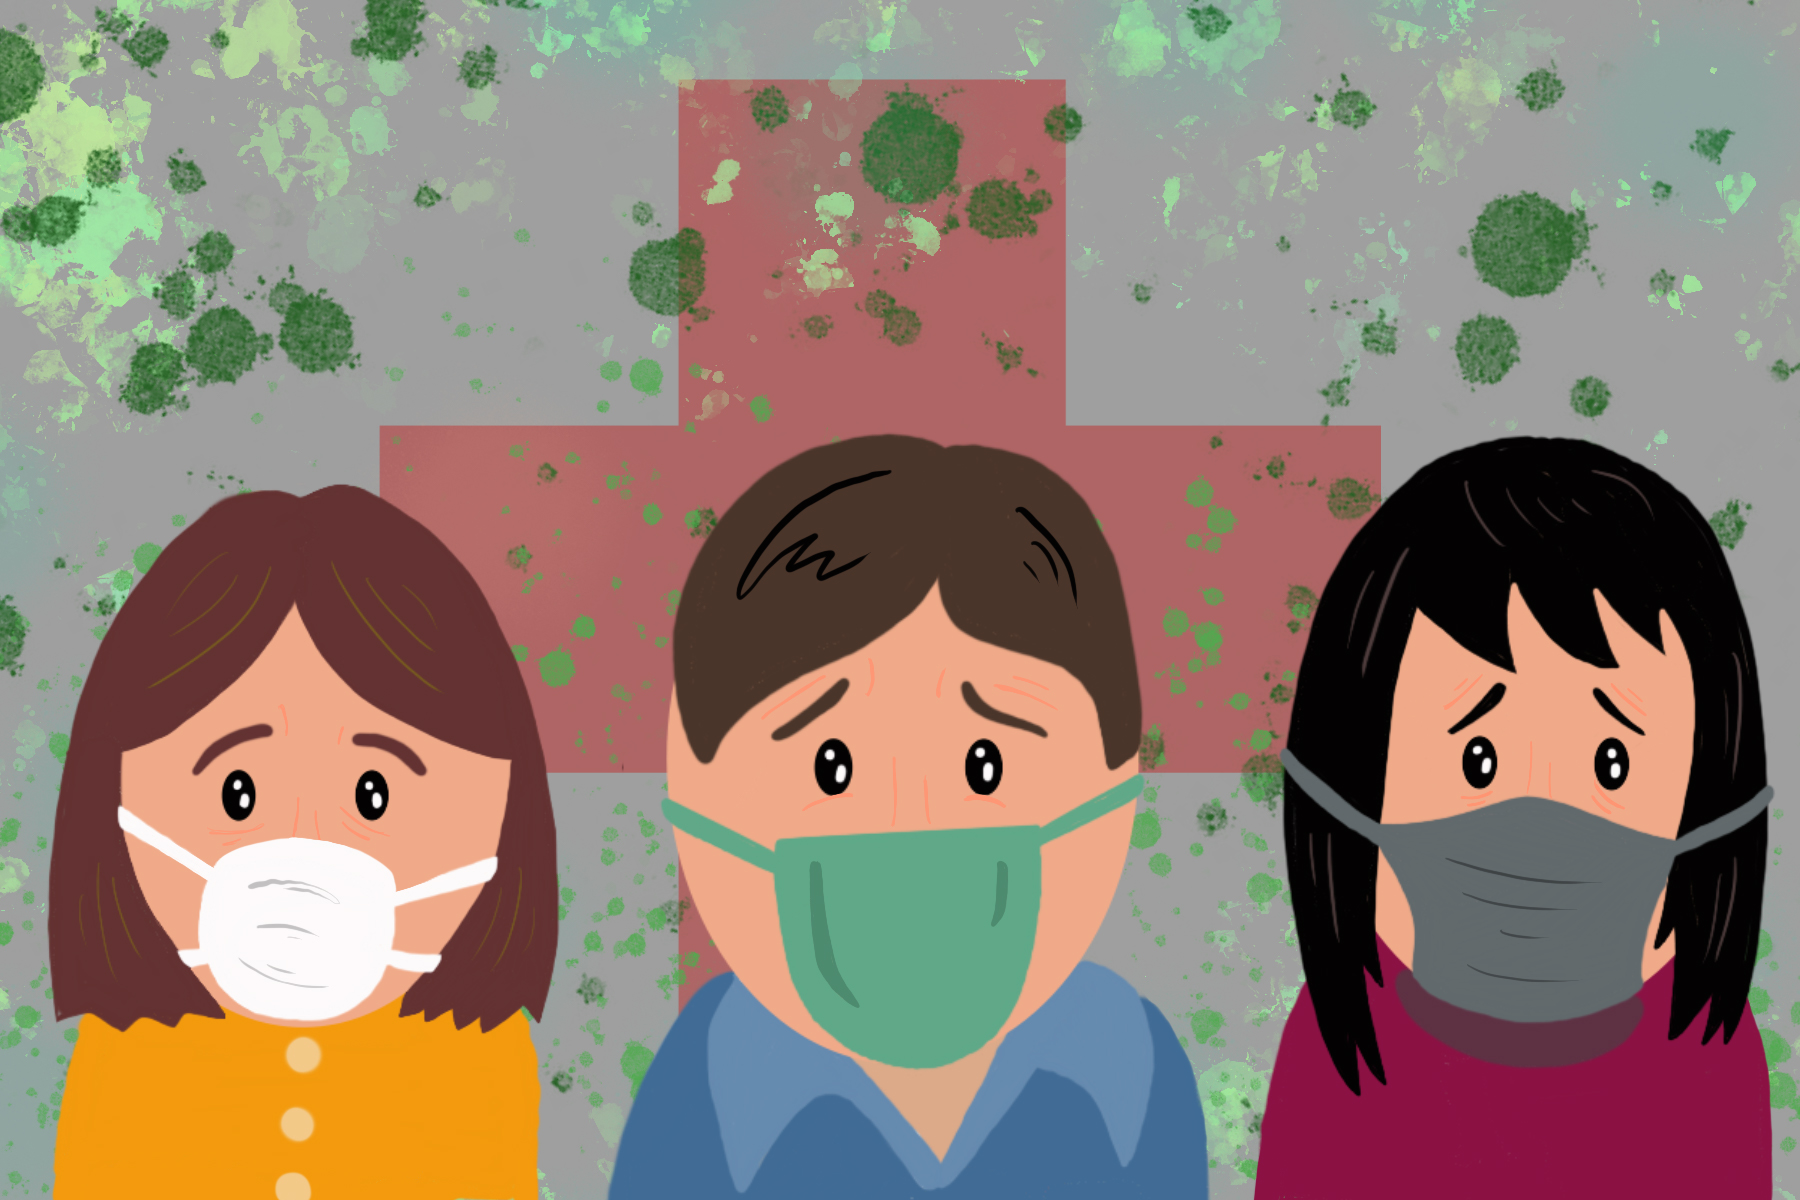 Illustration of people wearing masks to avoid coronavirus